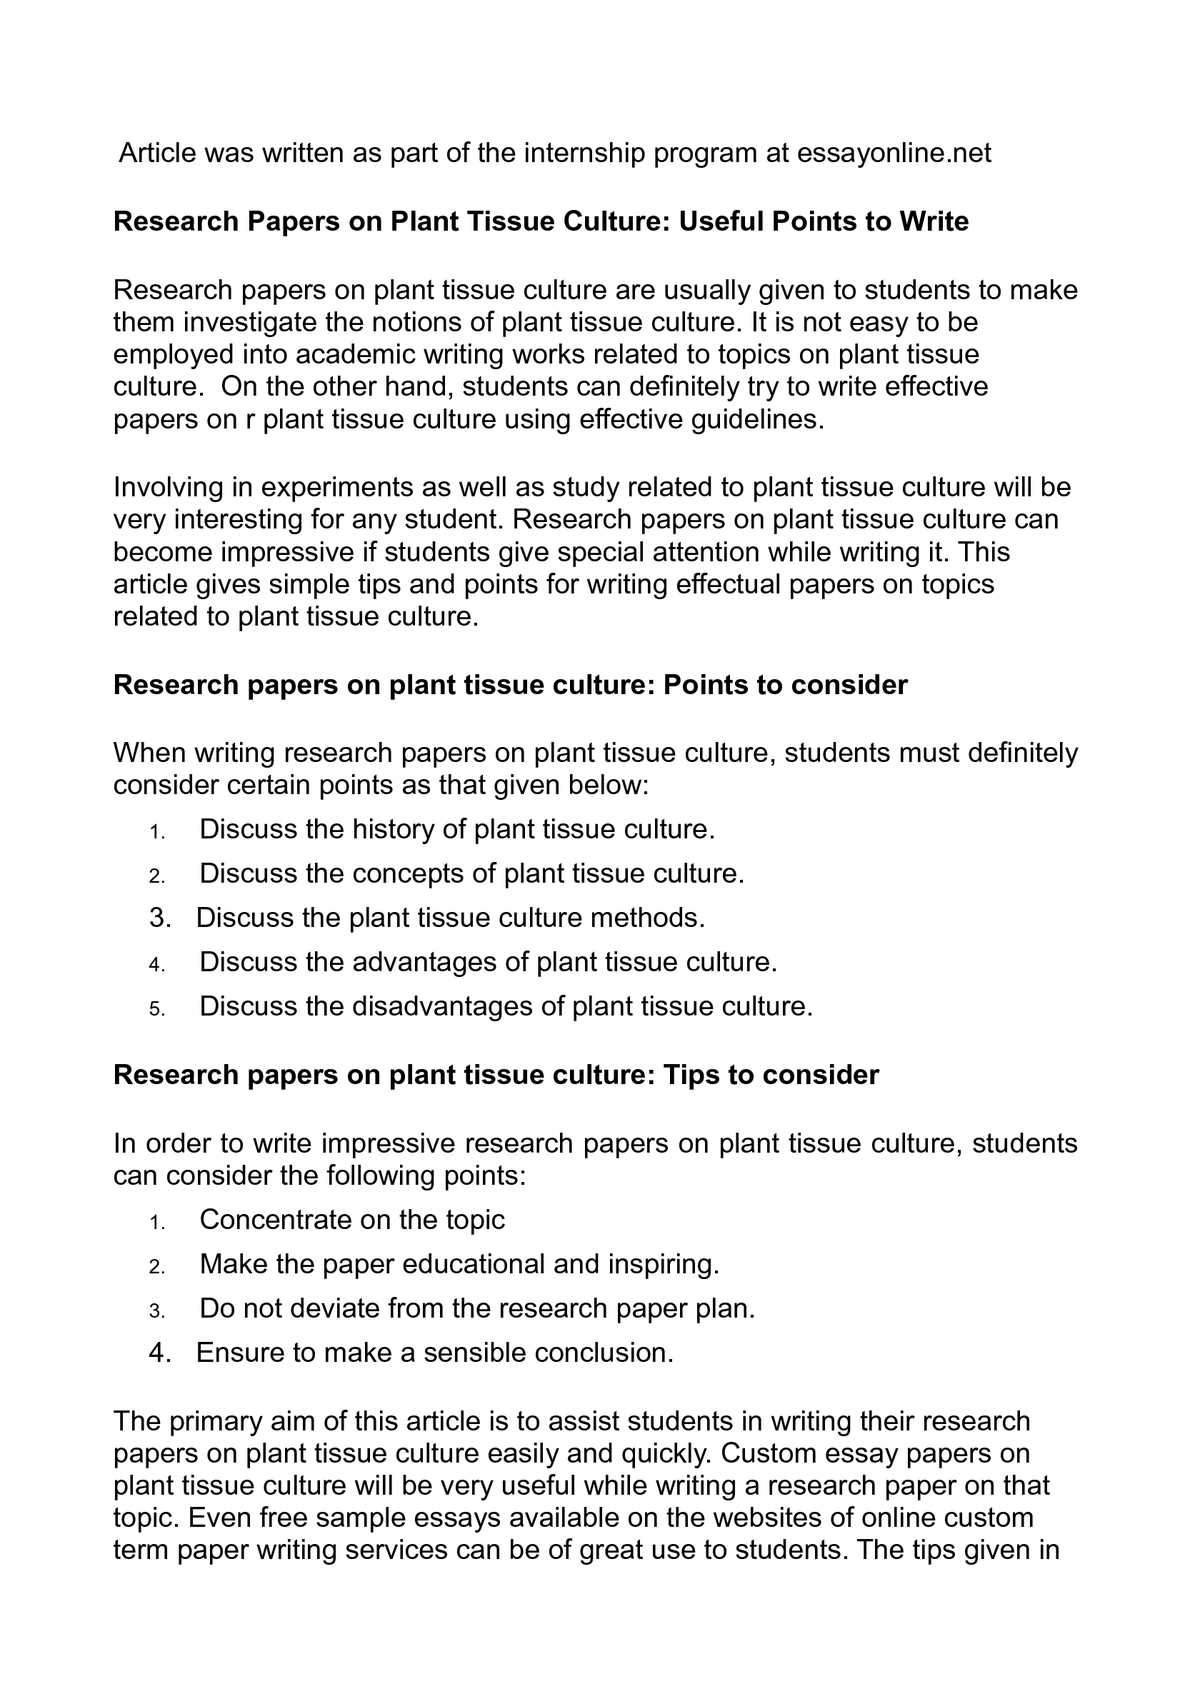 calamo   research papers on plant tissue culture useful